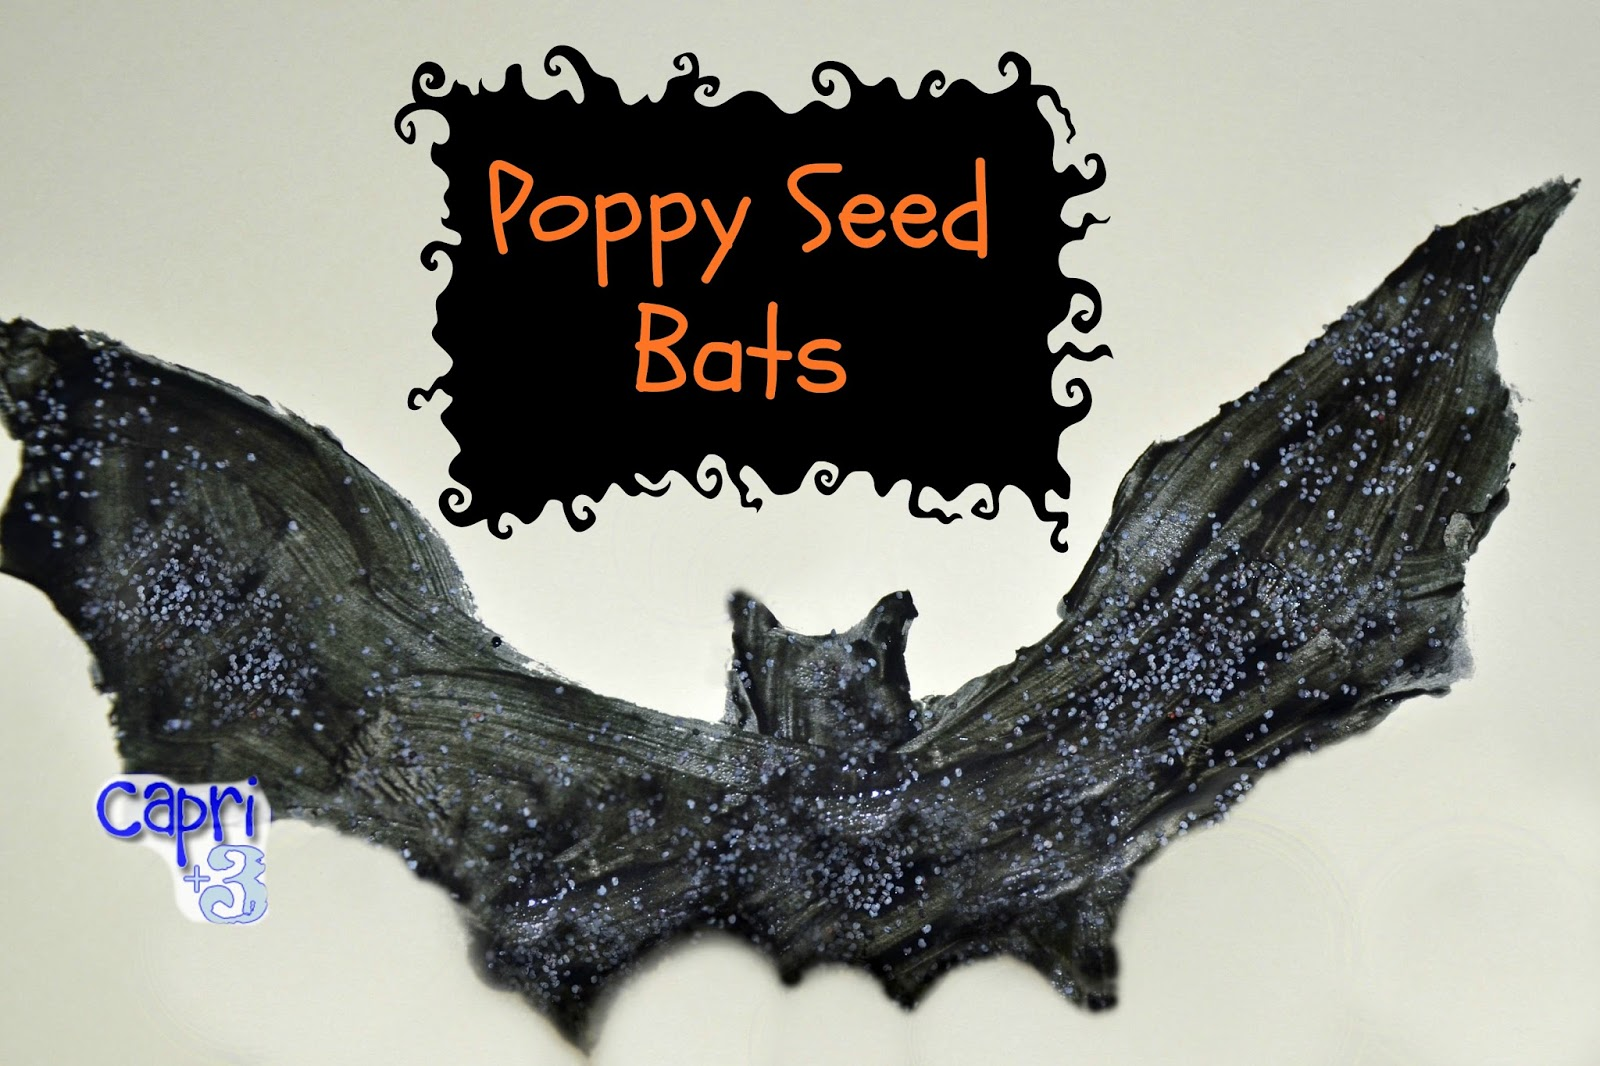 Quinoa Leaves and Poppy Seed Bats - Capri + 3 on